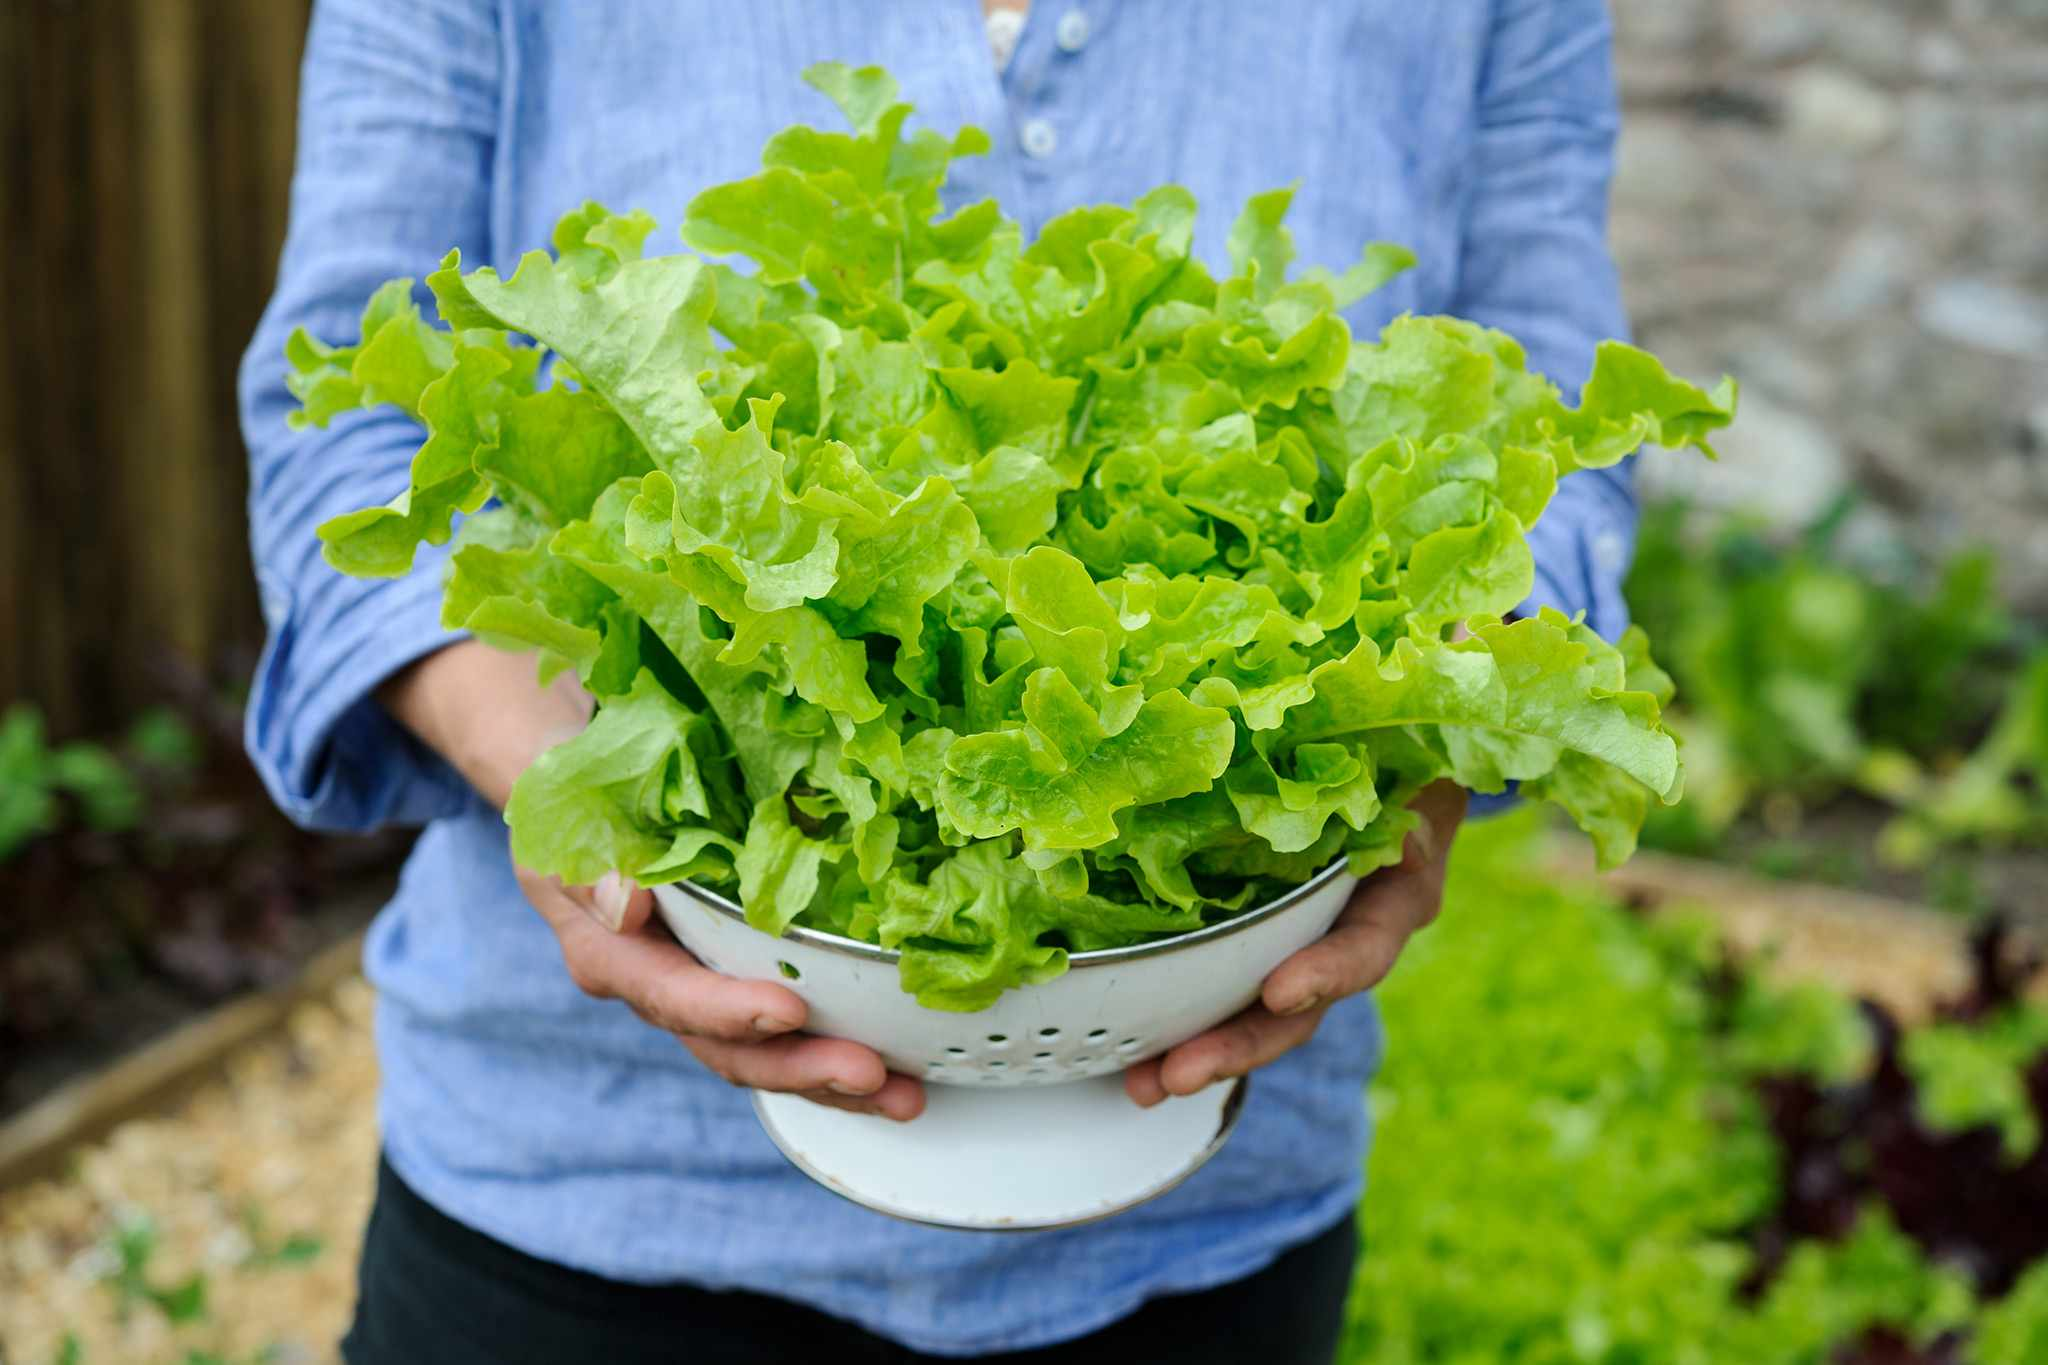 Freshly harvested lettuce leaves in a colander